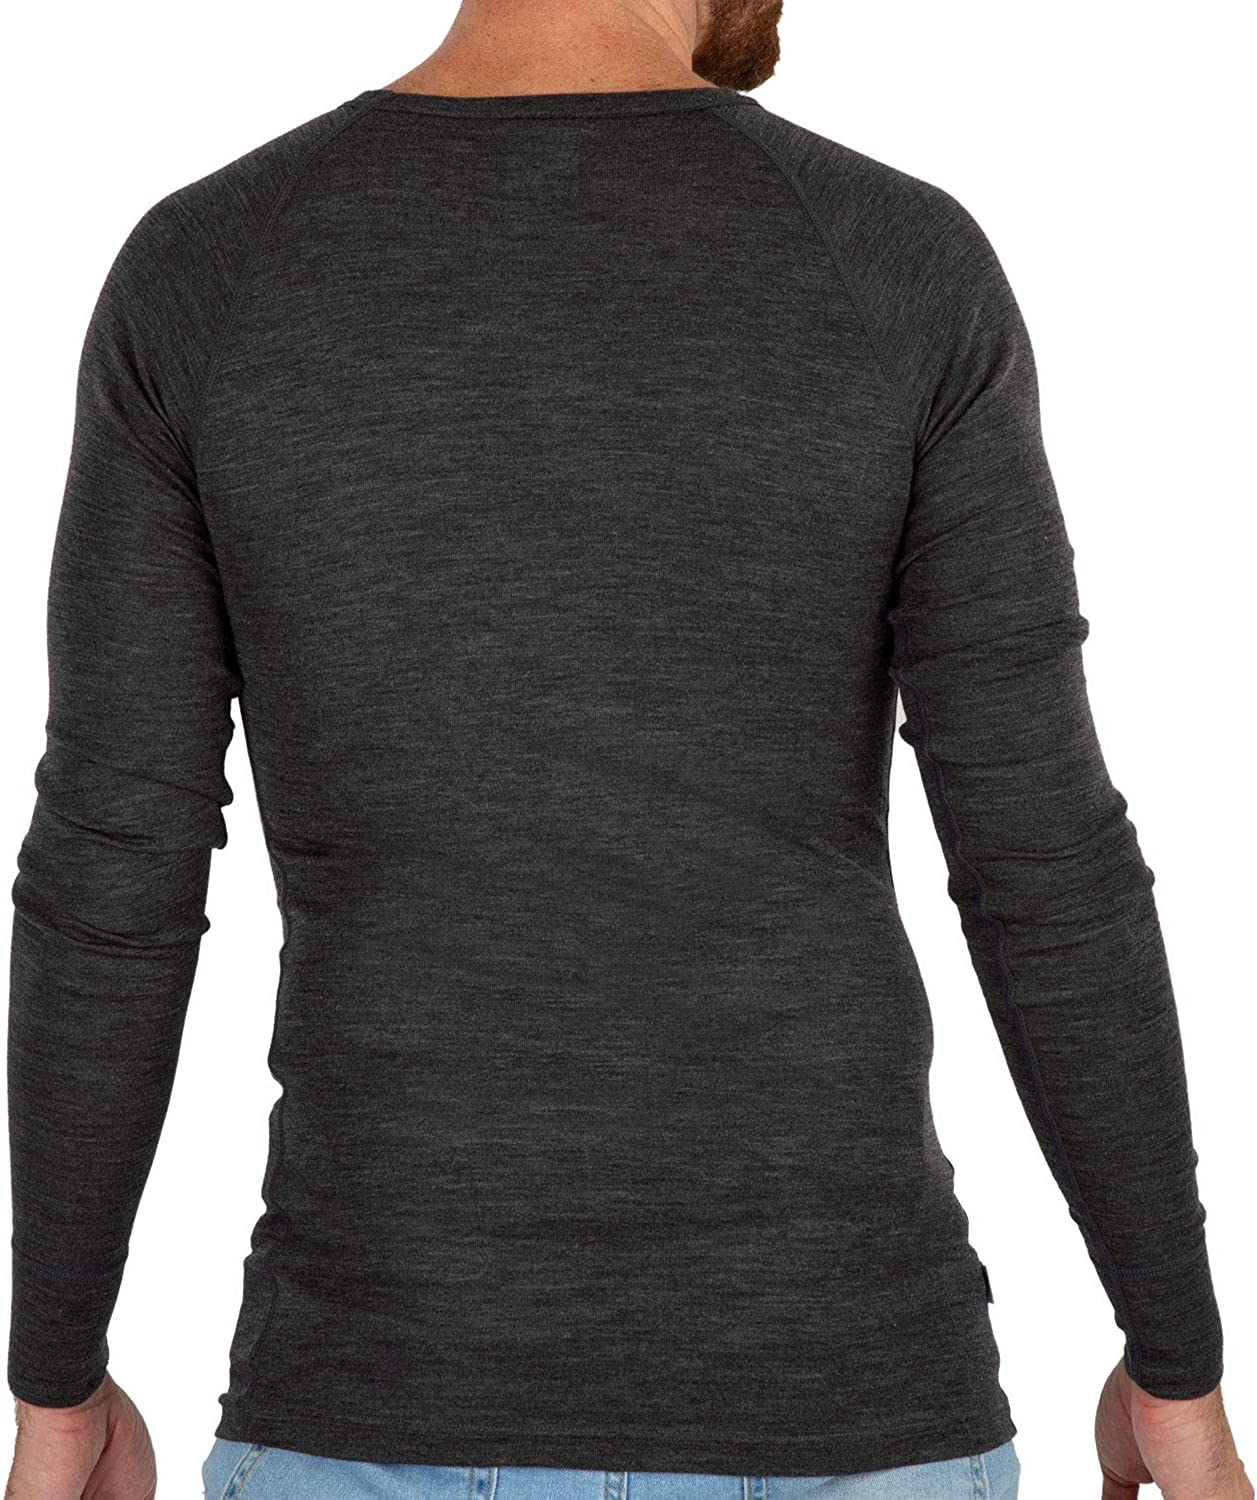 Meriwool Mens Base Layer 100 Merino Wool Lightweight Form Fit Top Thermal Shirt At Amazon Men S Clothing Store